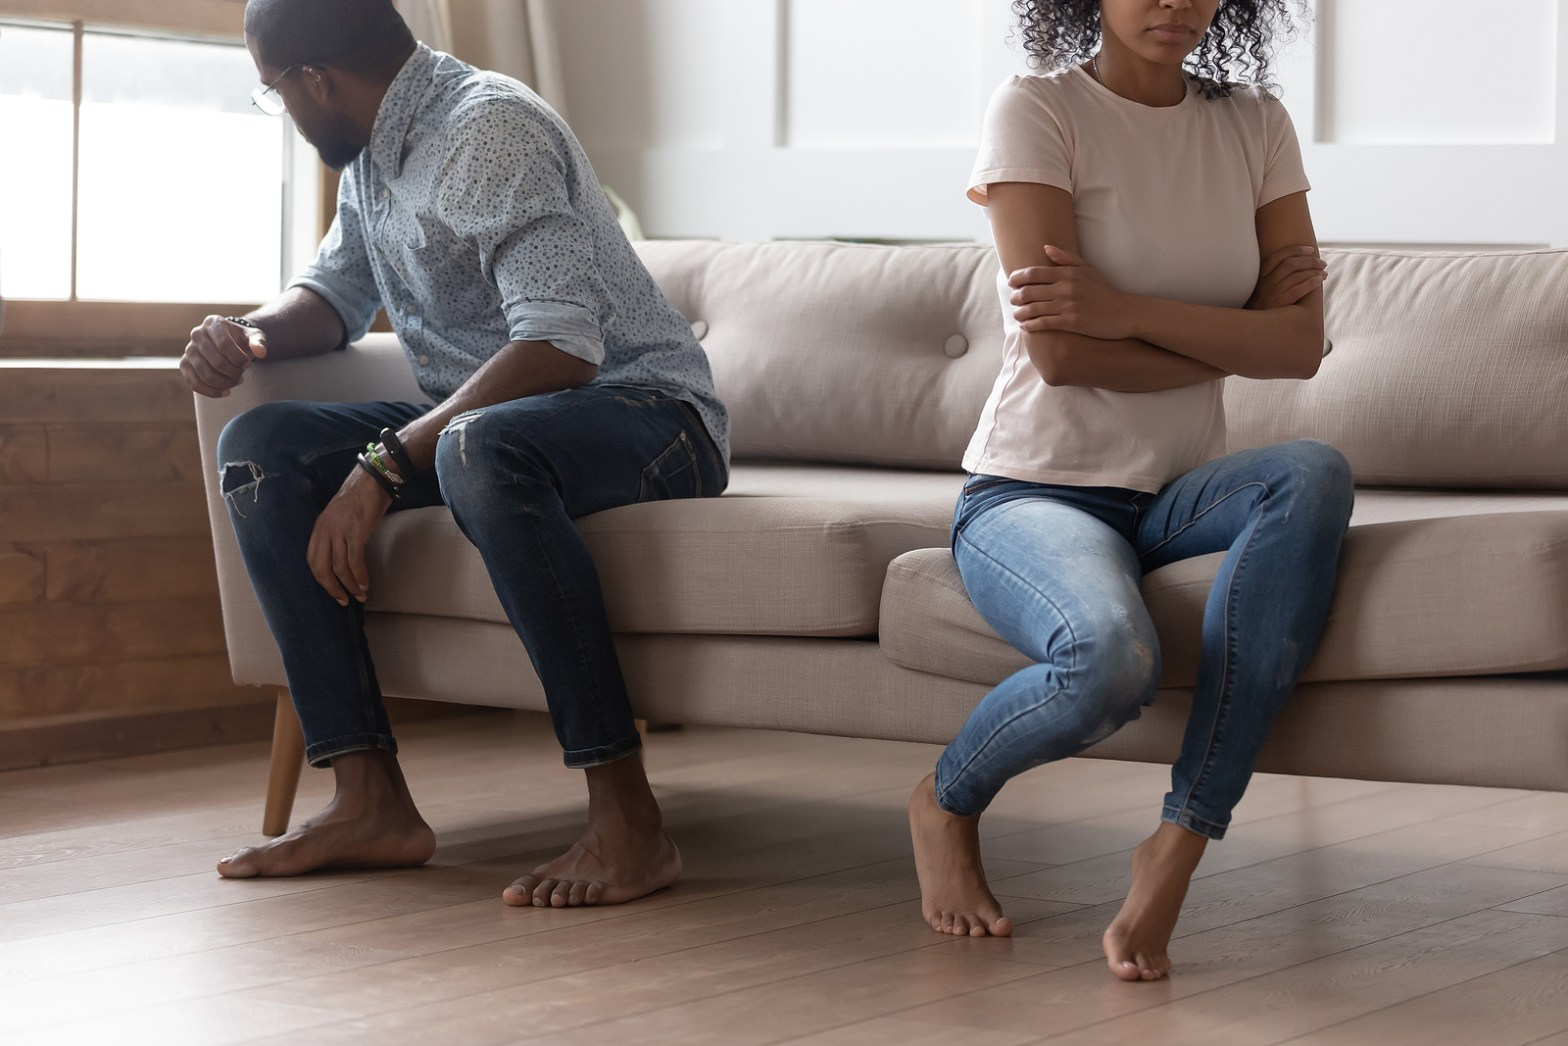 Spouses Sitting On Couch Separate From Each Other After an argument. Trauma therapy in Orange County, CA can you cope with a major breakup. Learn more about counseling for women from a trauma therapist today!